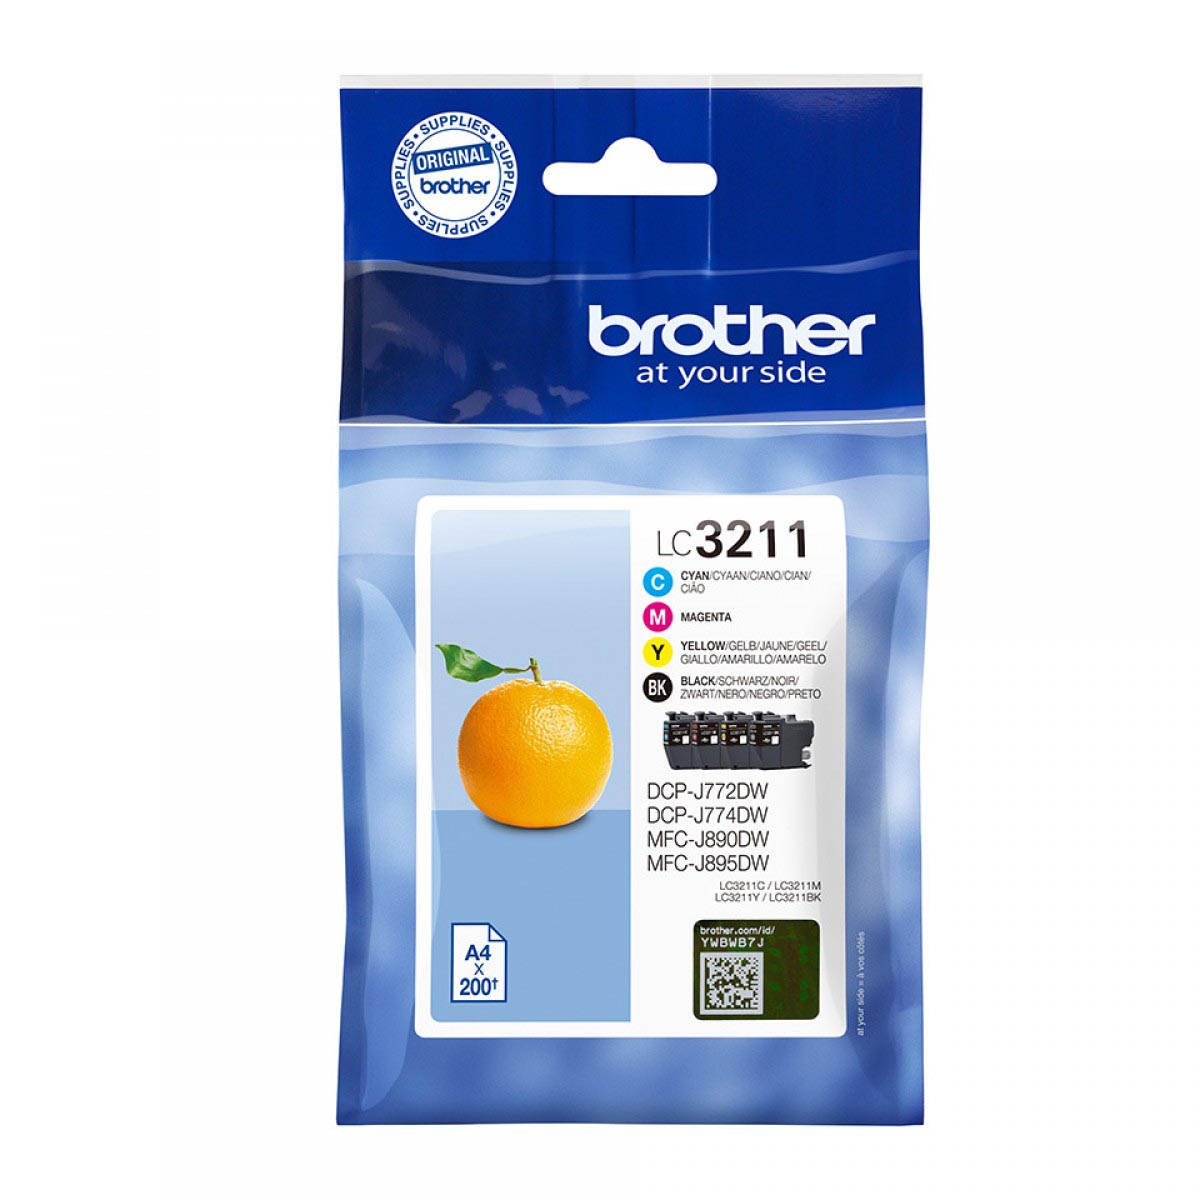 Multipack de tinta original Brother LC3211VAL 4 colores